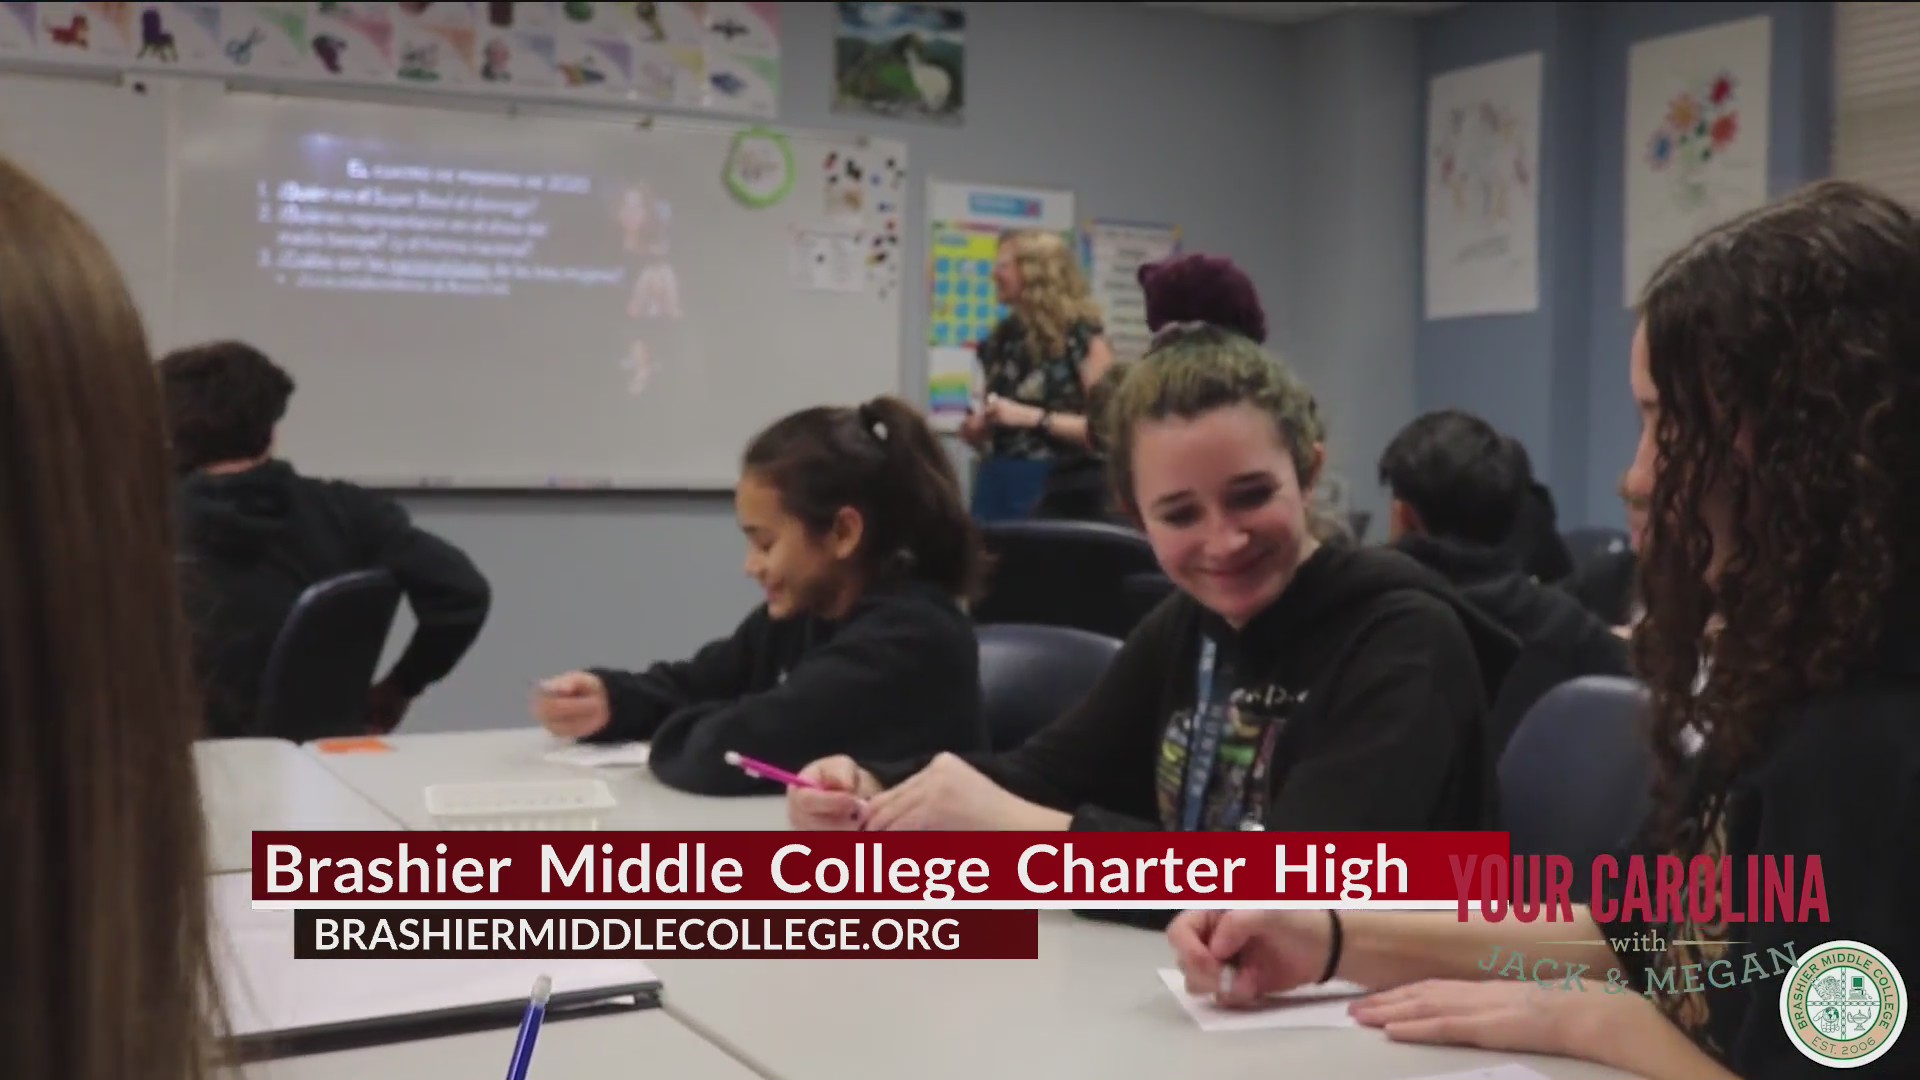 Brashier Middle College Charter High School